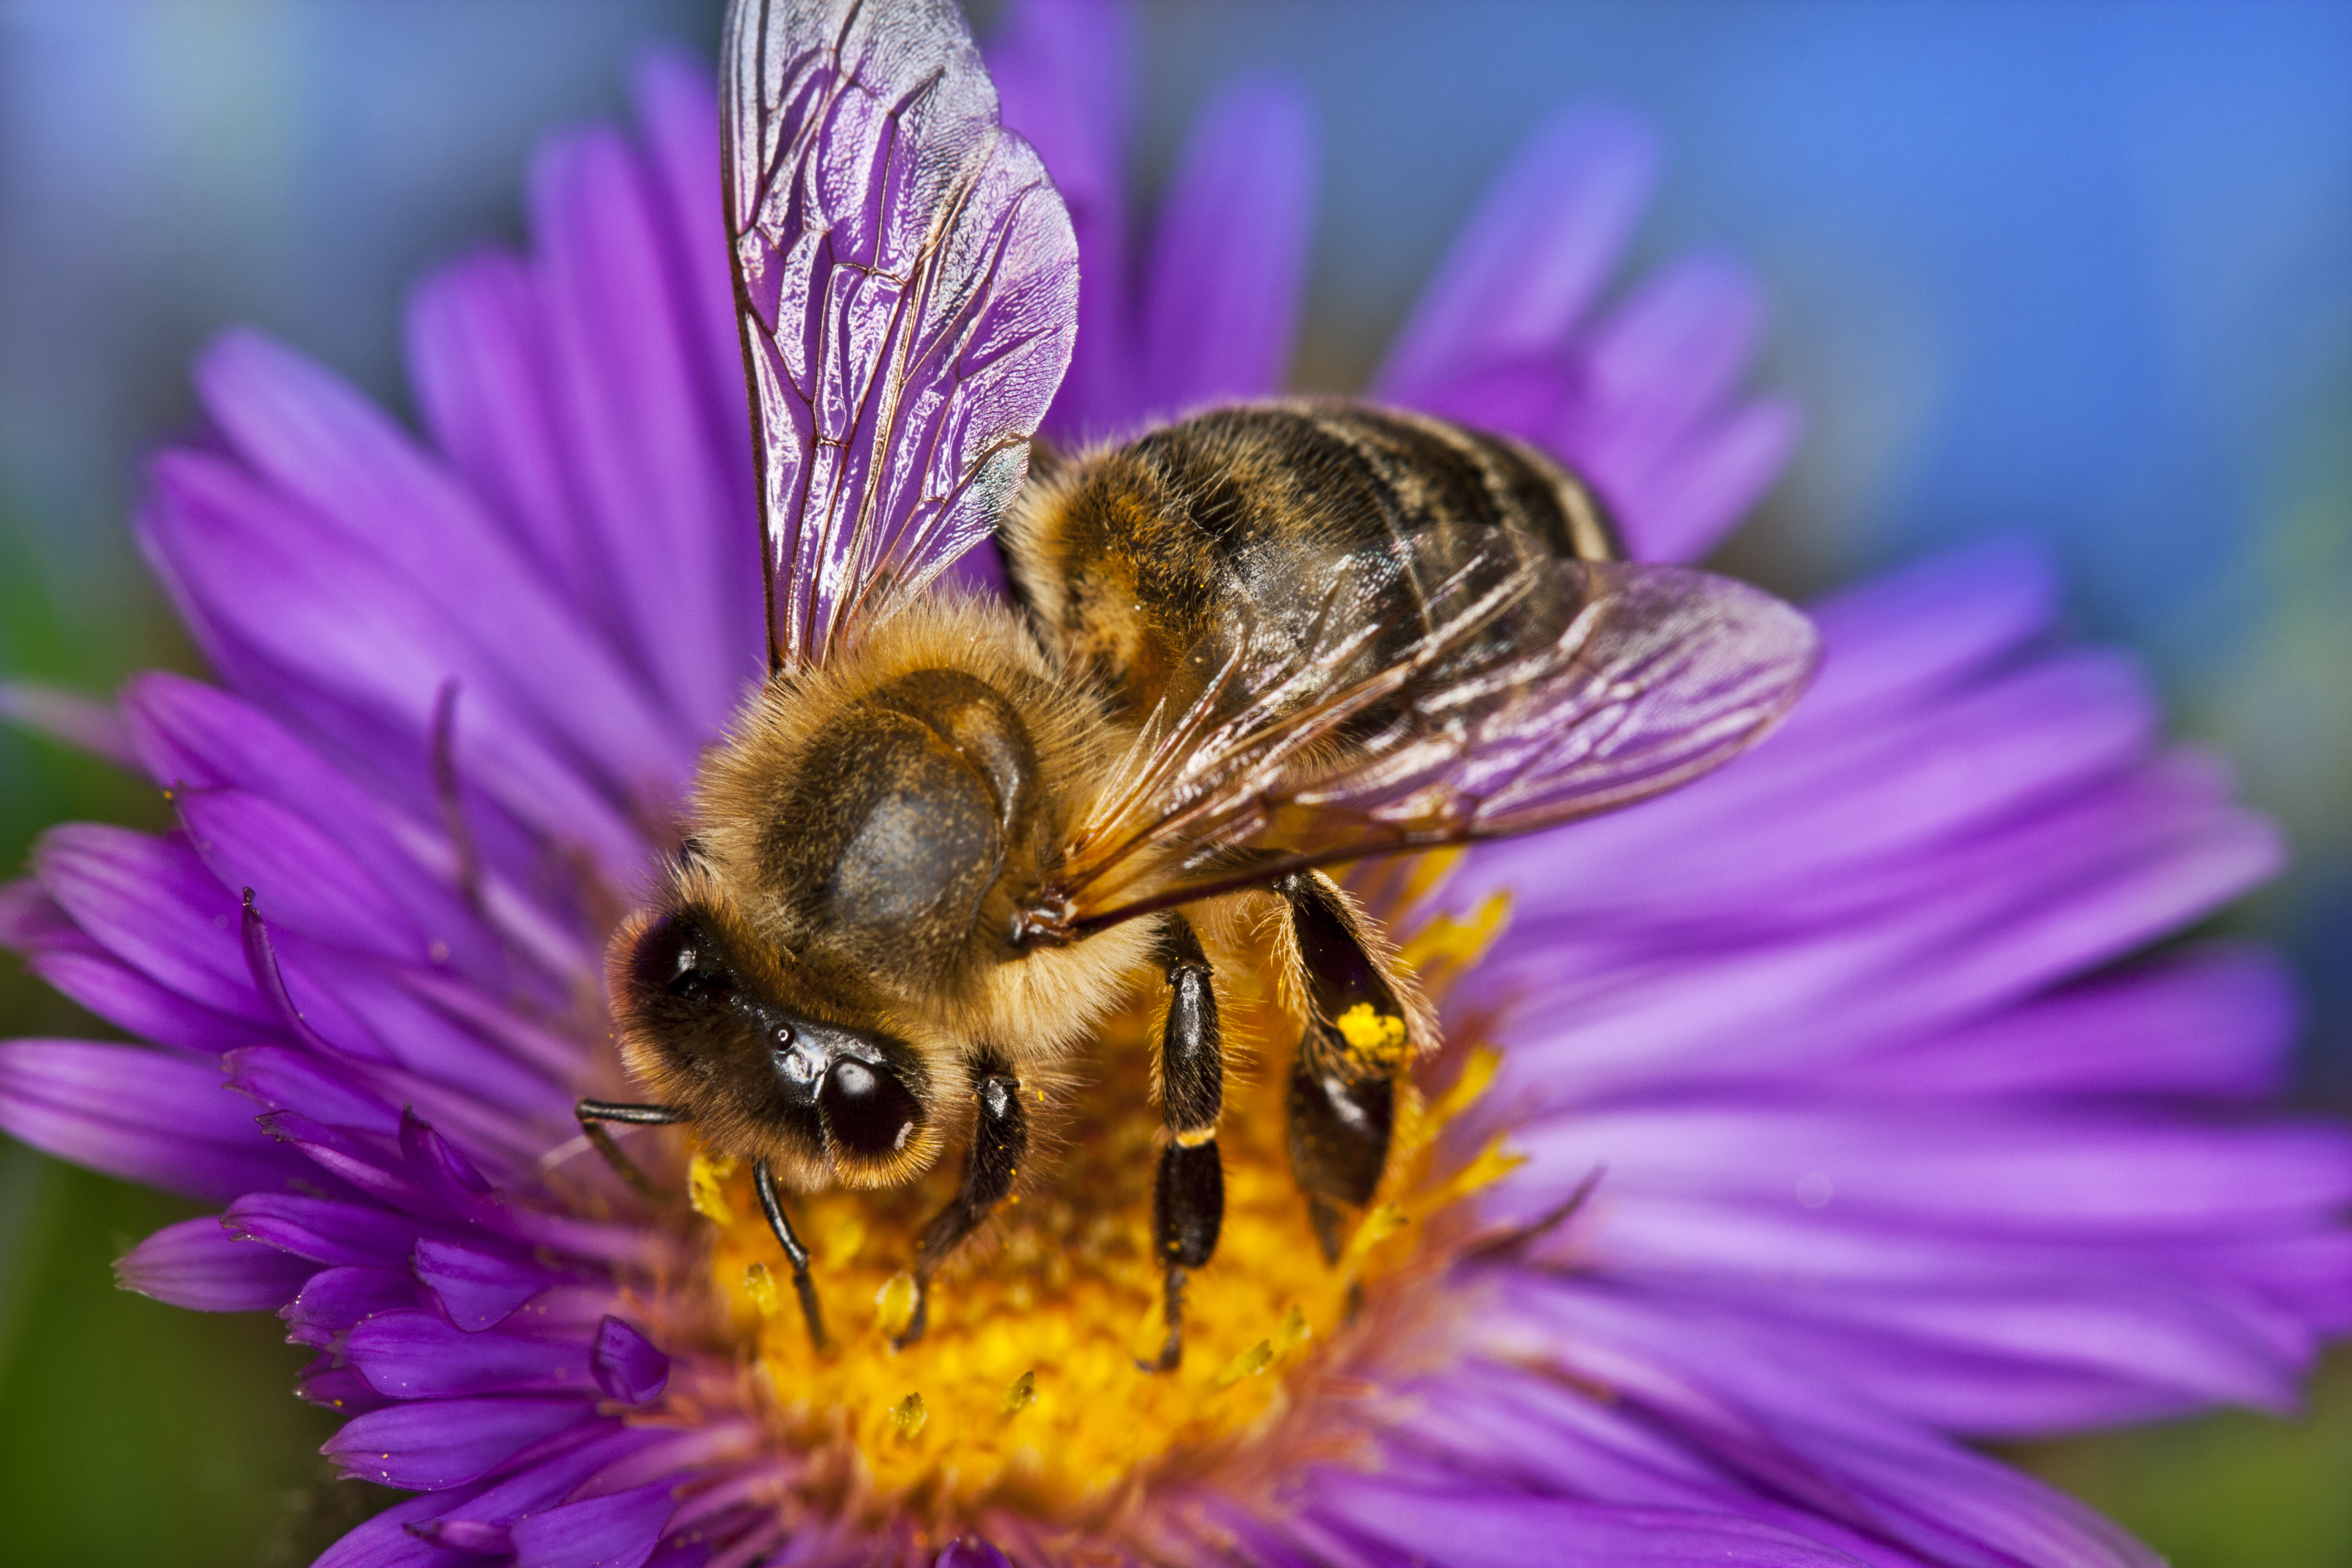 honey-bee-000016378296_Full.jpg